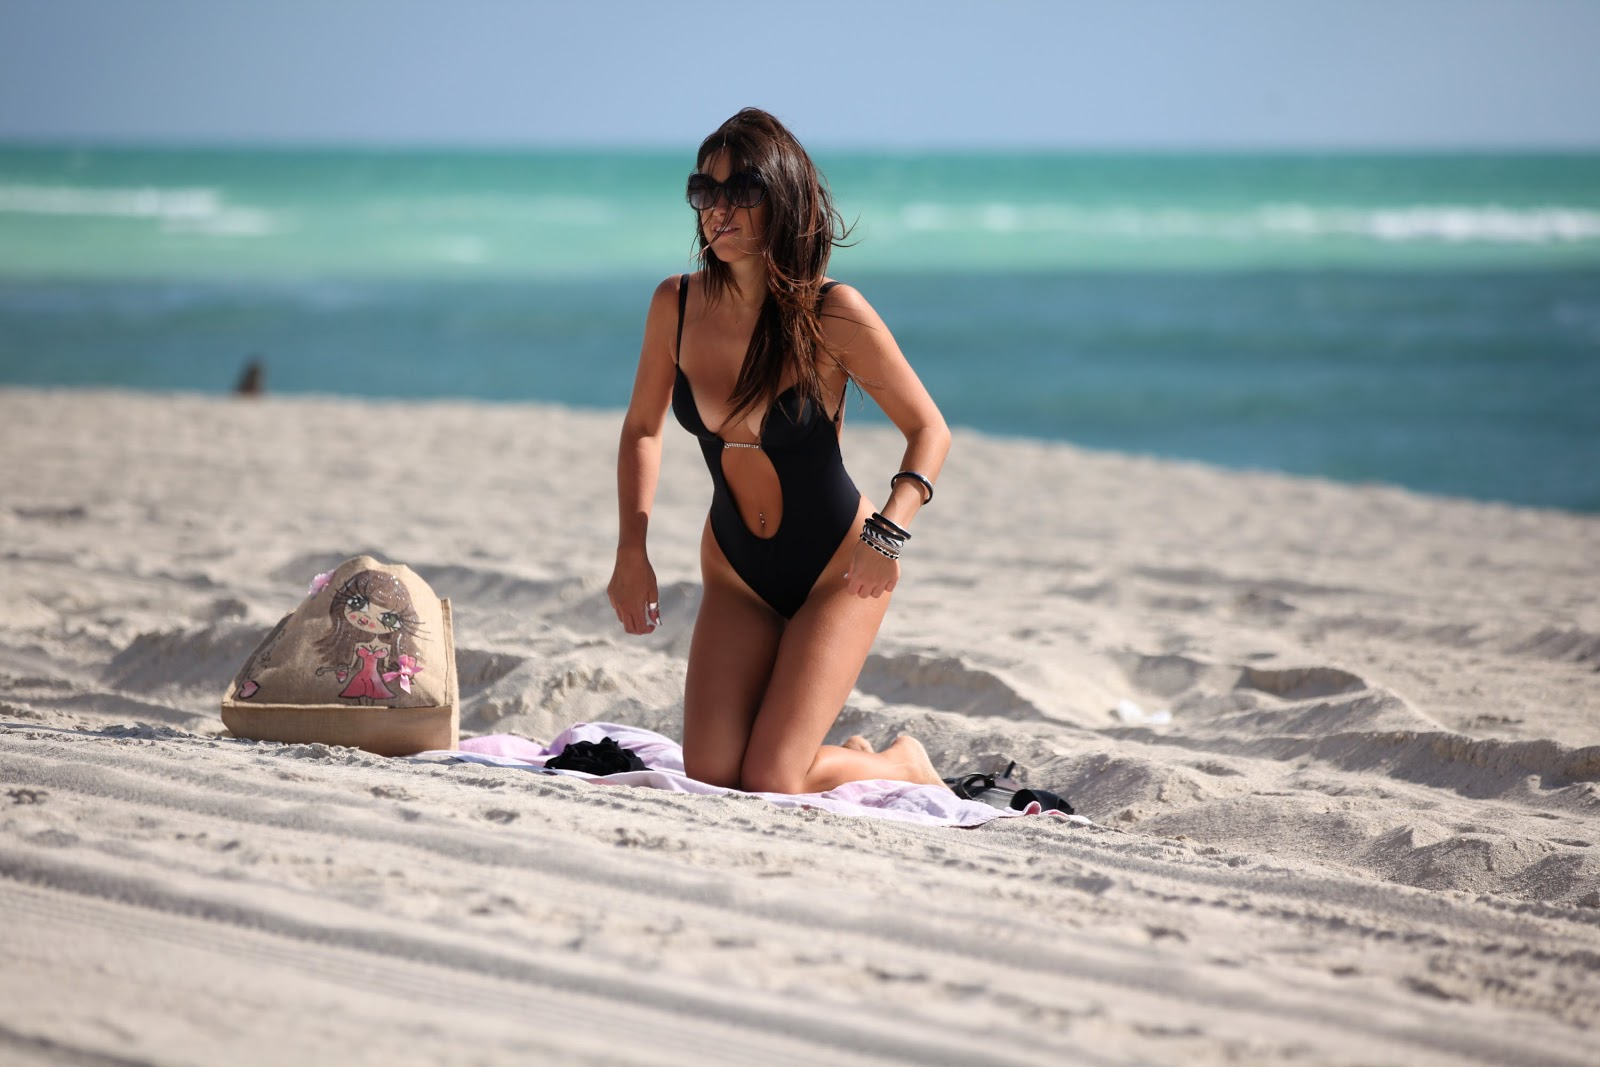 http://3.bp.blogspot.com/-0JUsXHYAEXA/UH1teGPVP-I/AAAAAAAAizM/cE7Oy-w9Yts/s1600/Claudia+Romani+in+one+piece+black+swimsuit+with+a+thong+back+at+the+beach+in+Miami+Beach+-+October+11%252C+2012+2.jpg